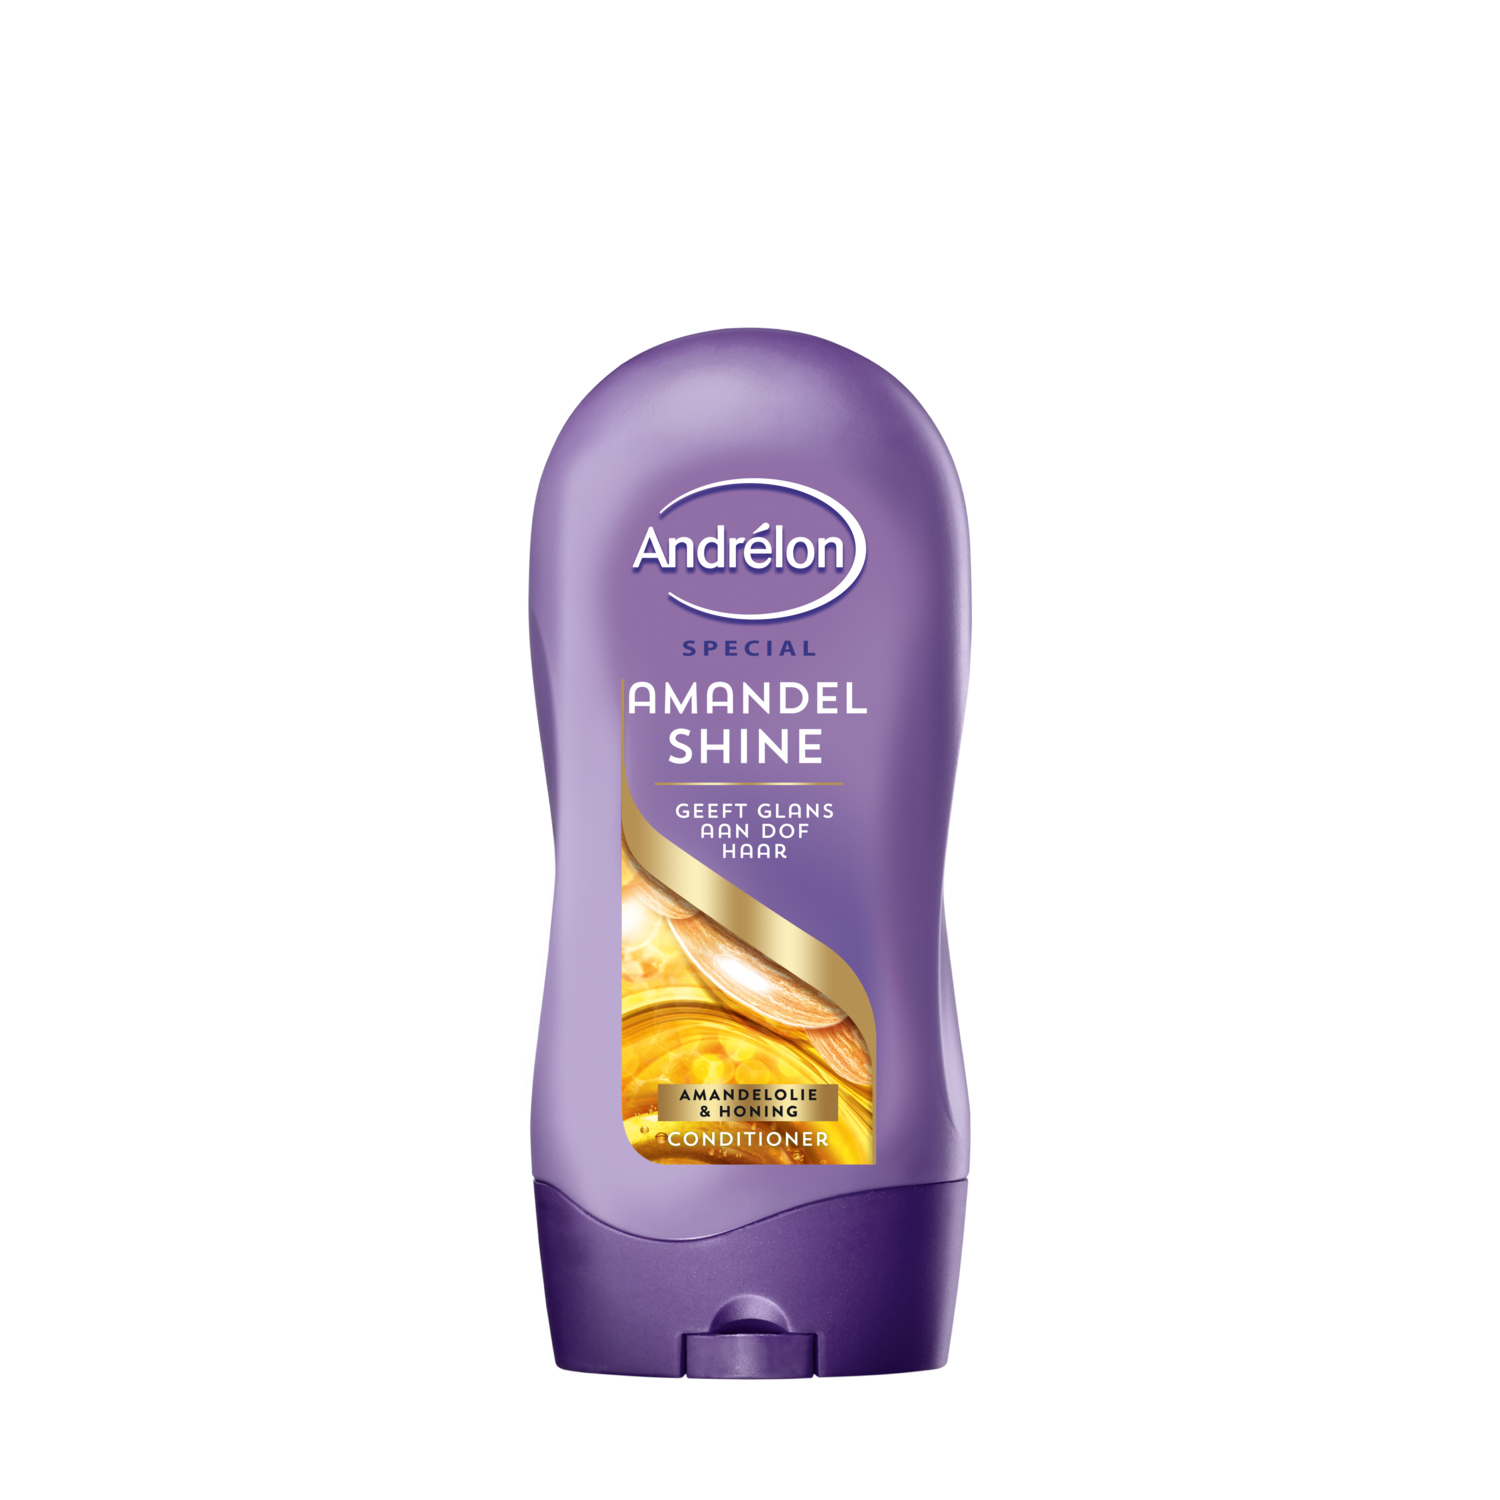 Andrelon Special Conditioner Amandel Shine 300 ml